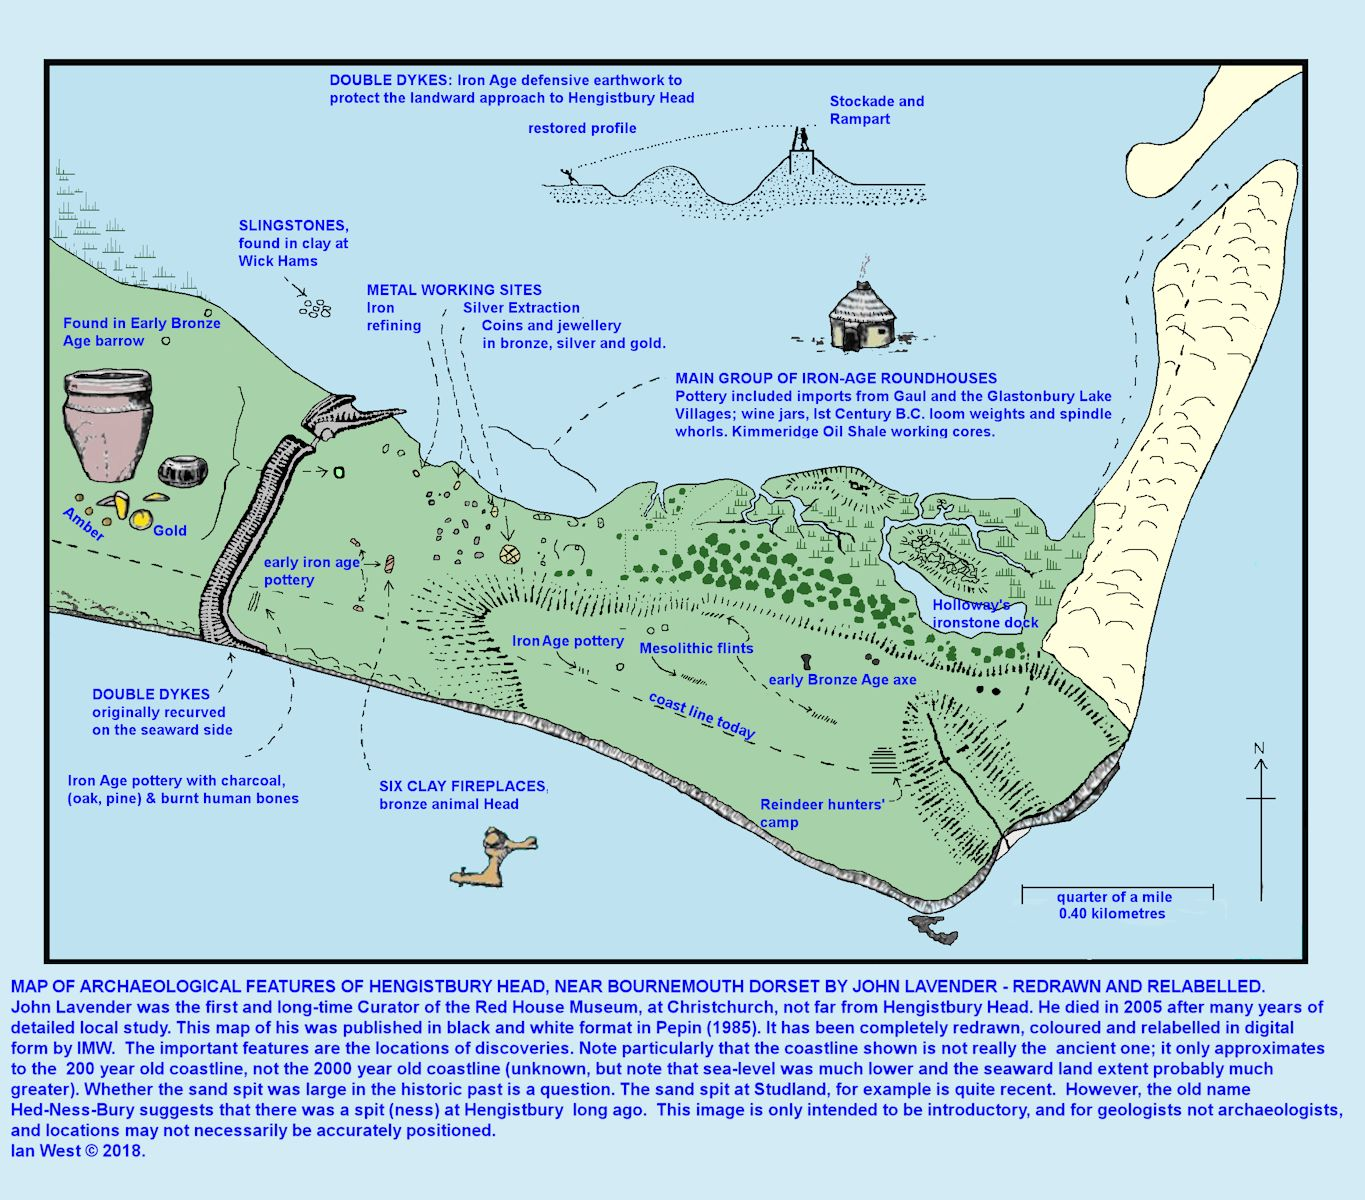 Archaeological features of Hengistbury Head, as shown on a map by Lavender, the late Christchurch, Red House Museum Curator, also with an old coastline, although this outline for the distant past is not accurately known